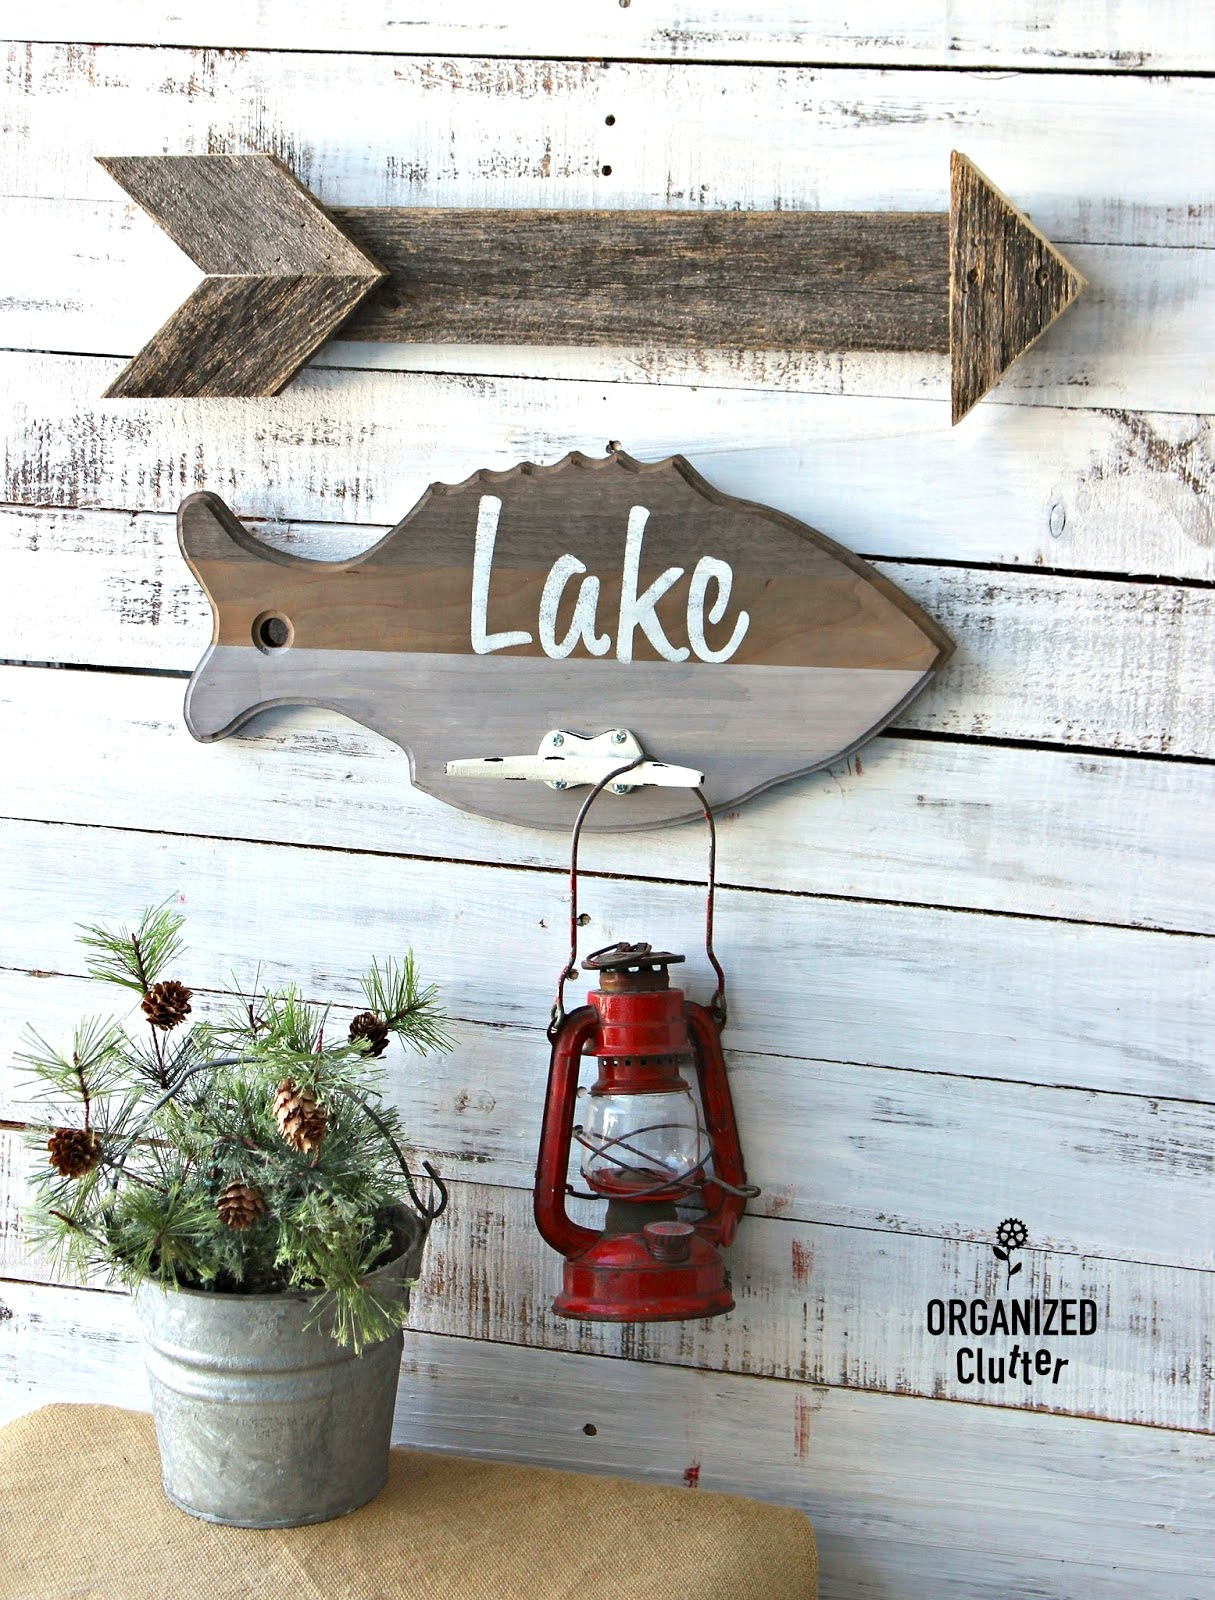 Repurposed fish cutting board Lake sign by Organized Clutter, featured on Funky Junk Interiors